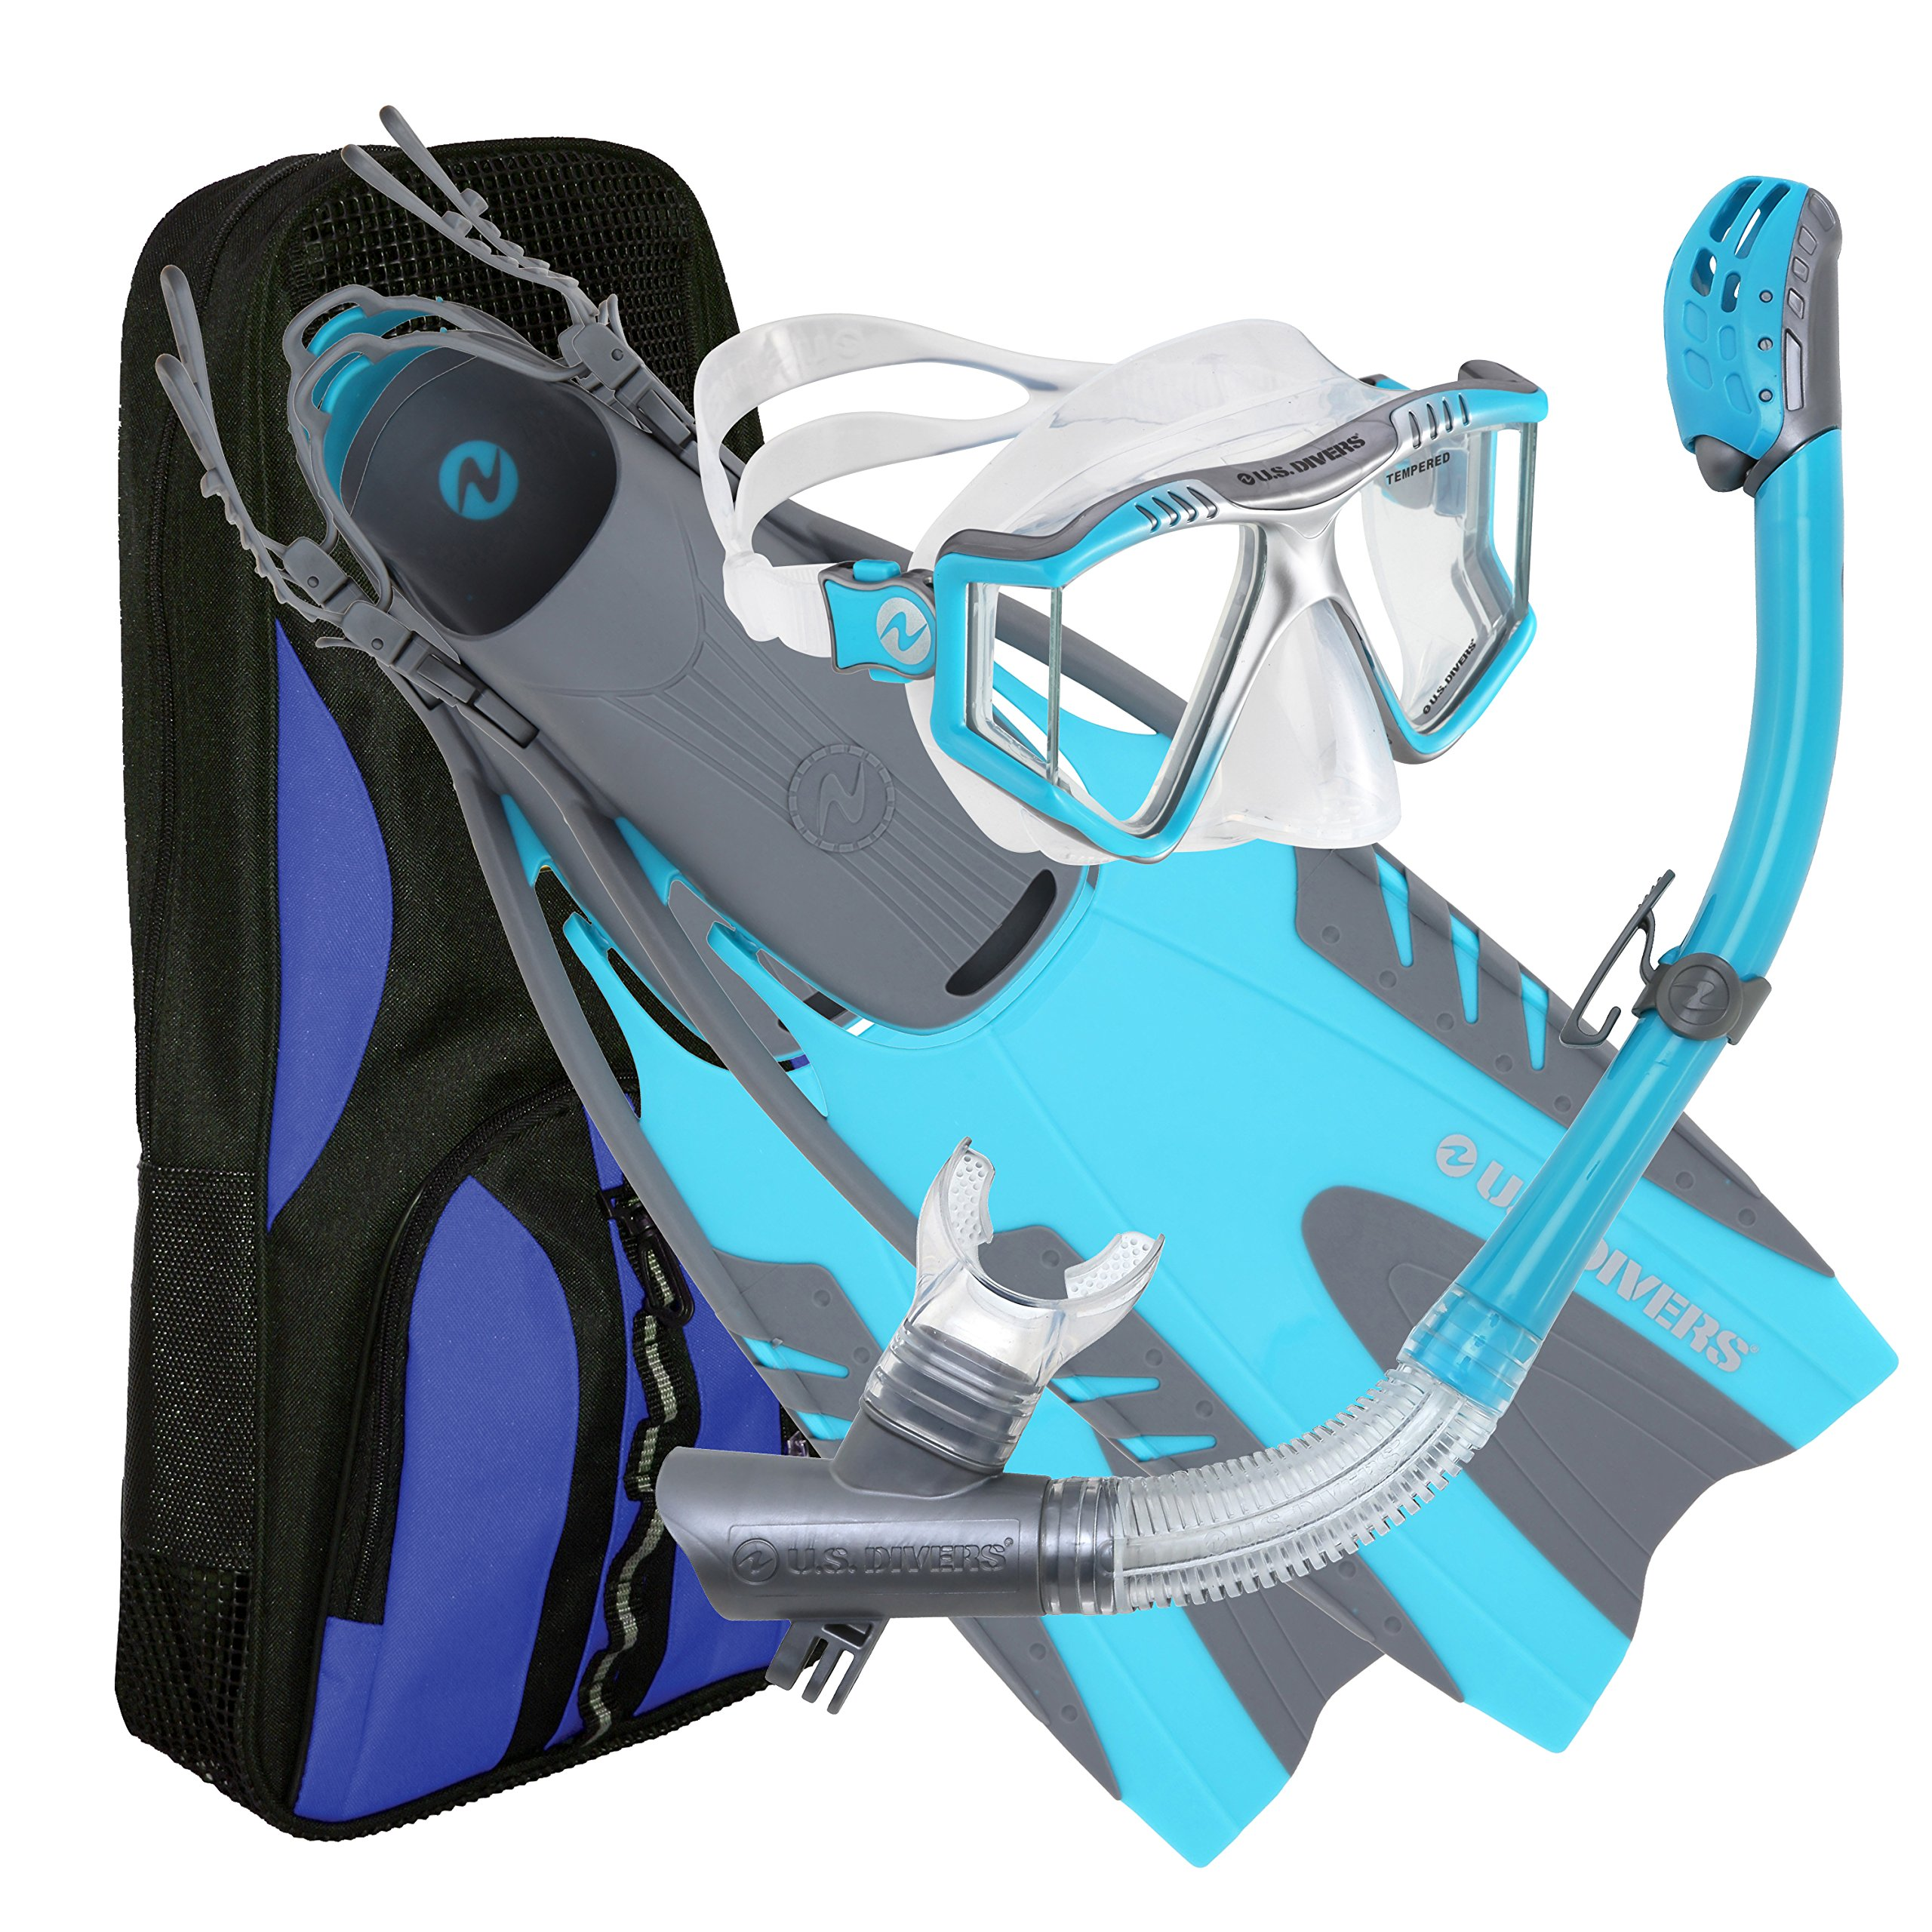 U.S. Divers Lux Mask Fins Snorkel Set Compatible with GoPro, Aqua, Small/Medium by U.S. Divers